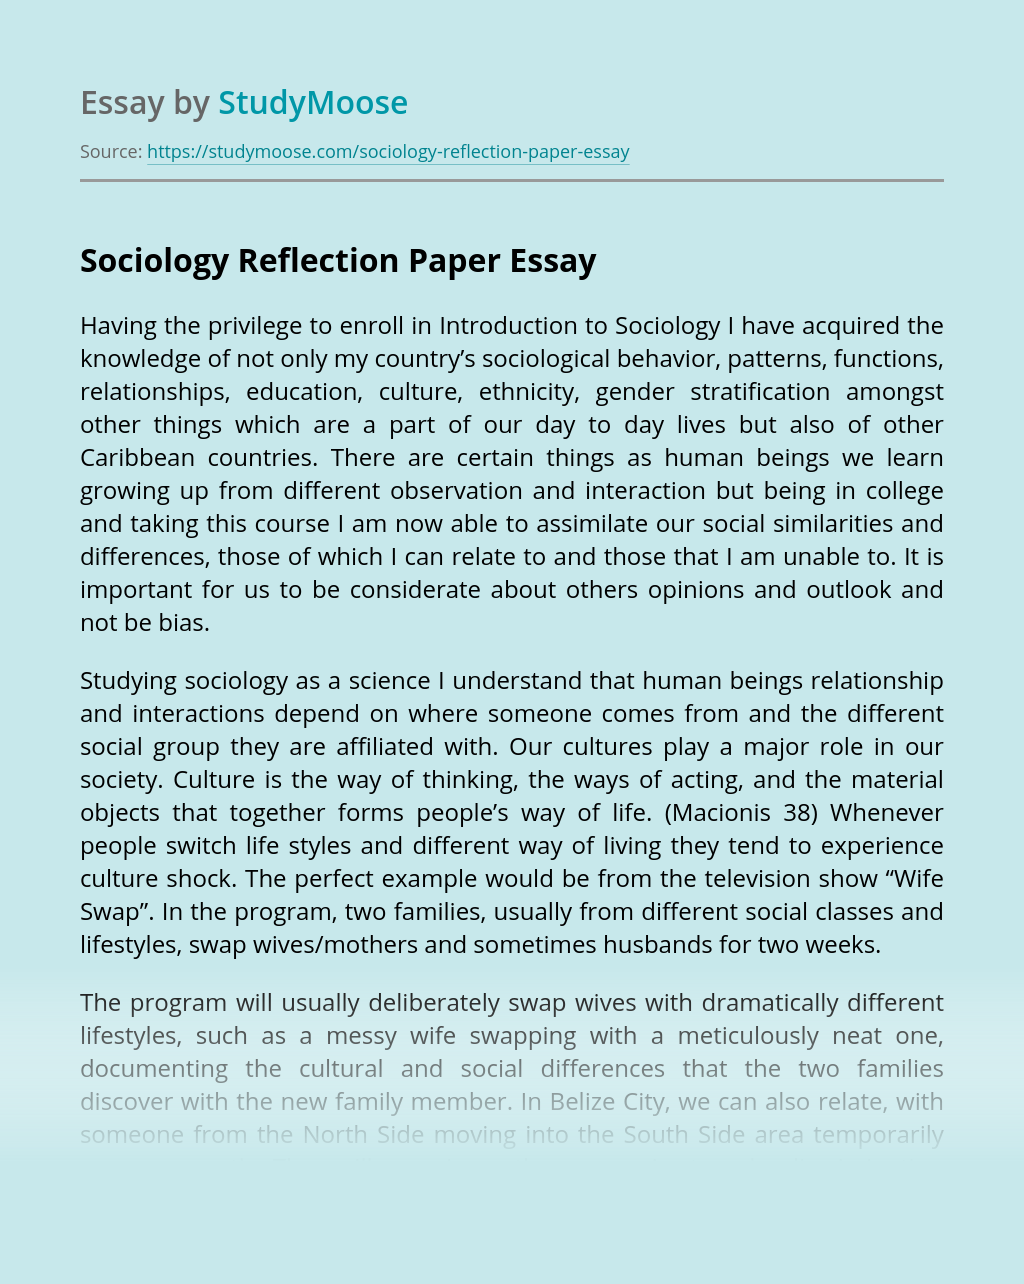 sociology reflection paper essay example